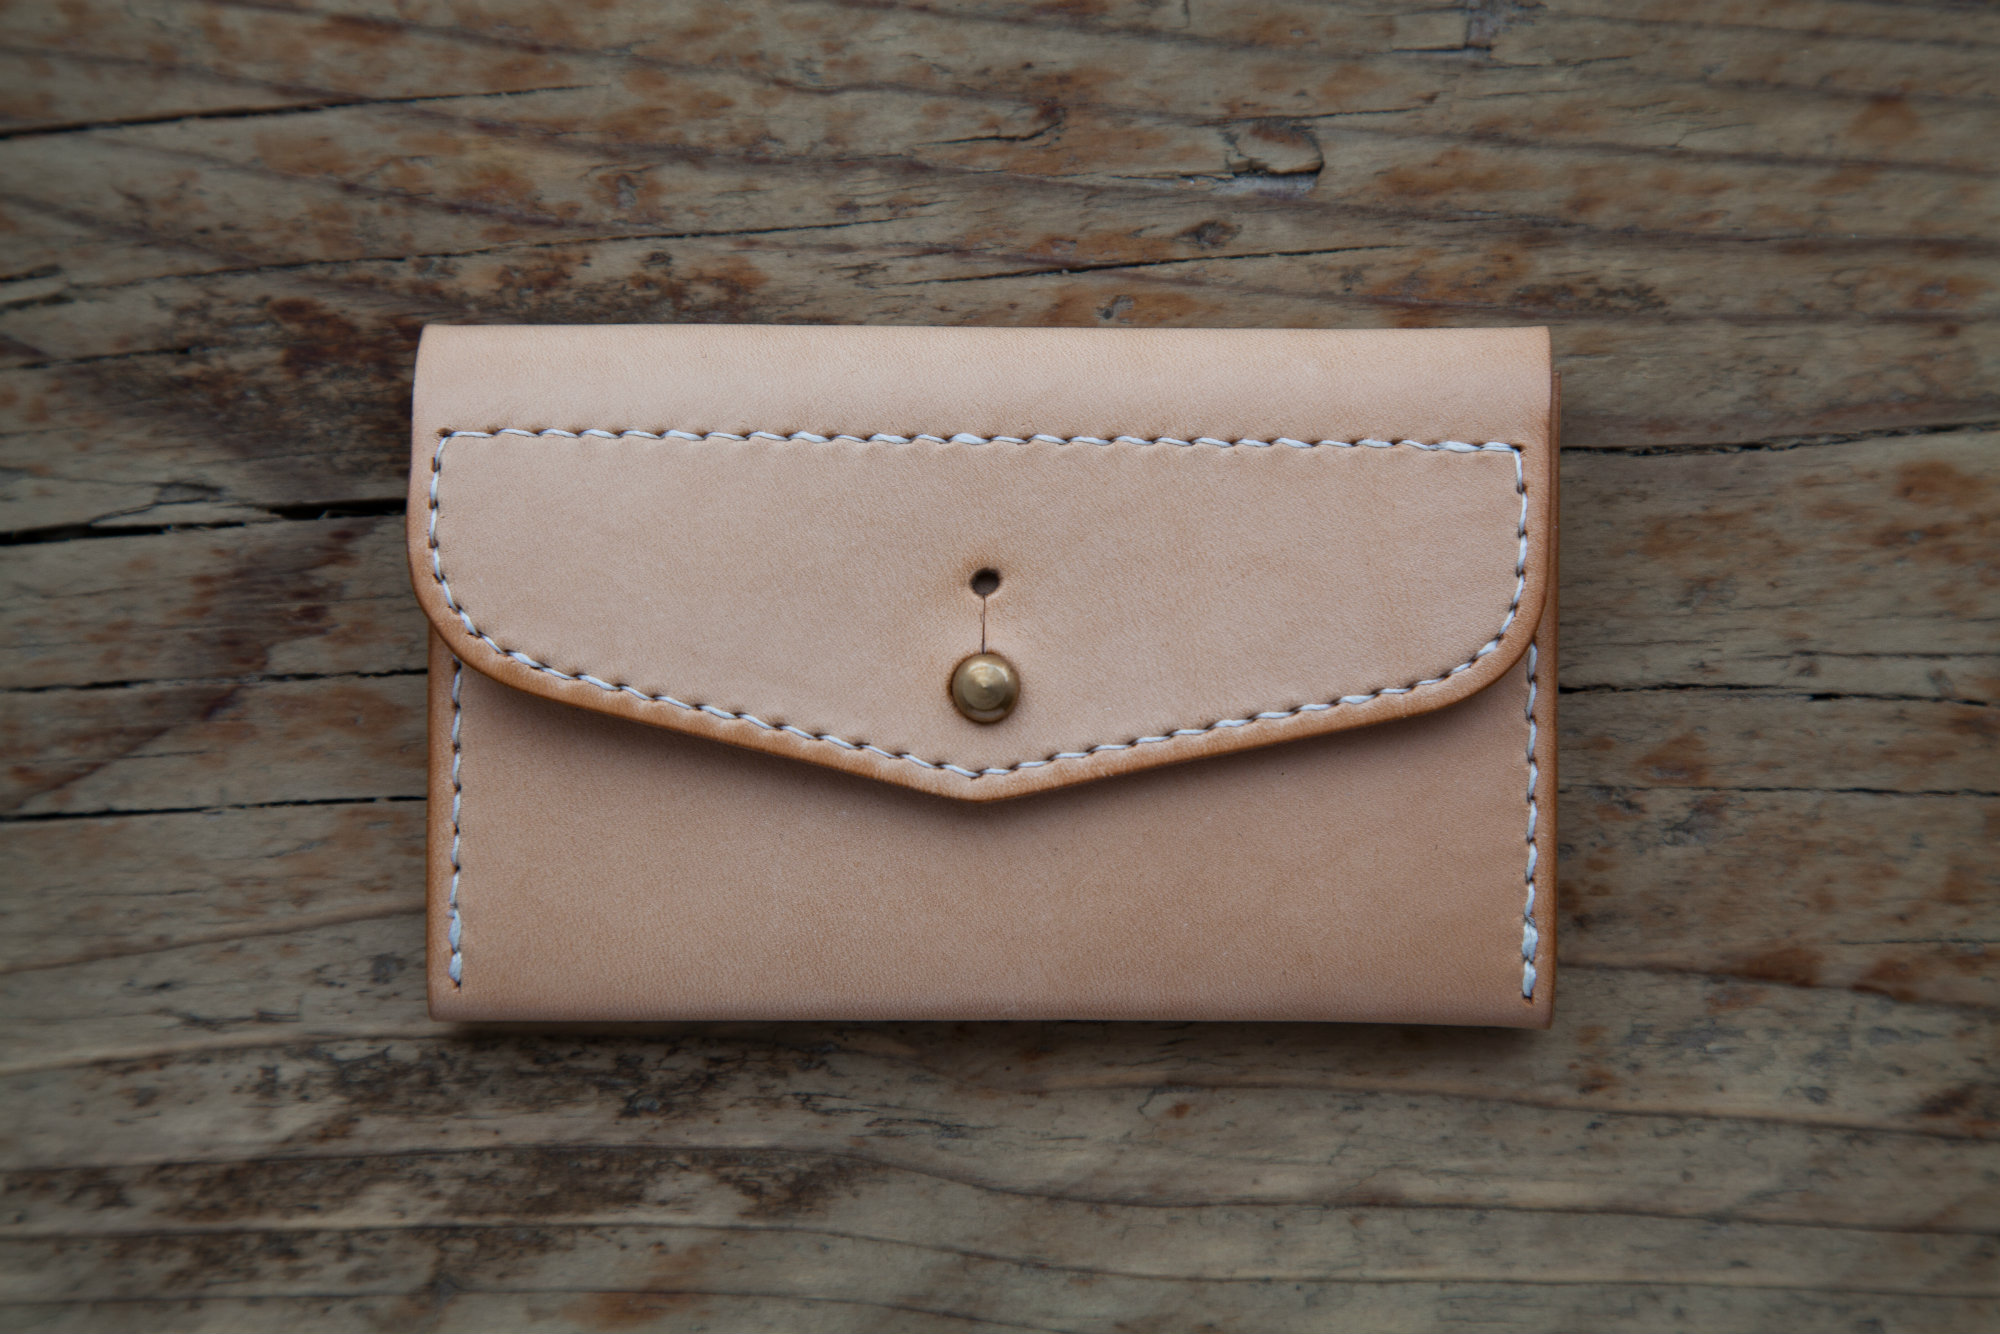 Mes_Leather_Products_079small.jpg